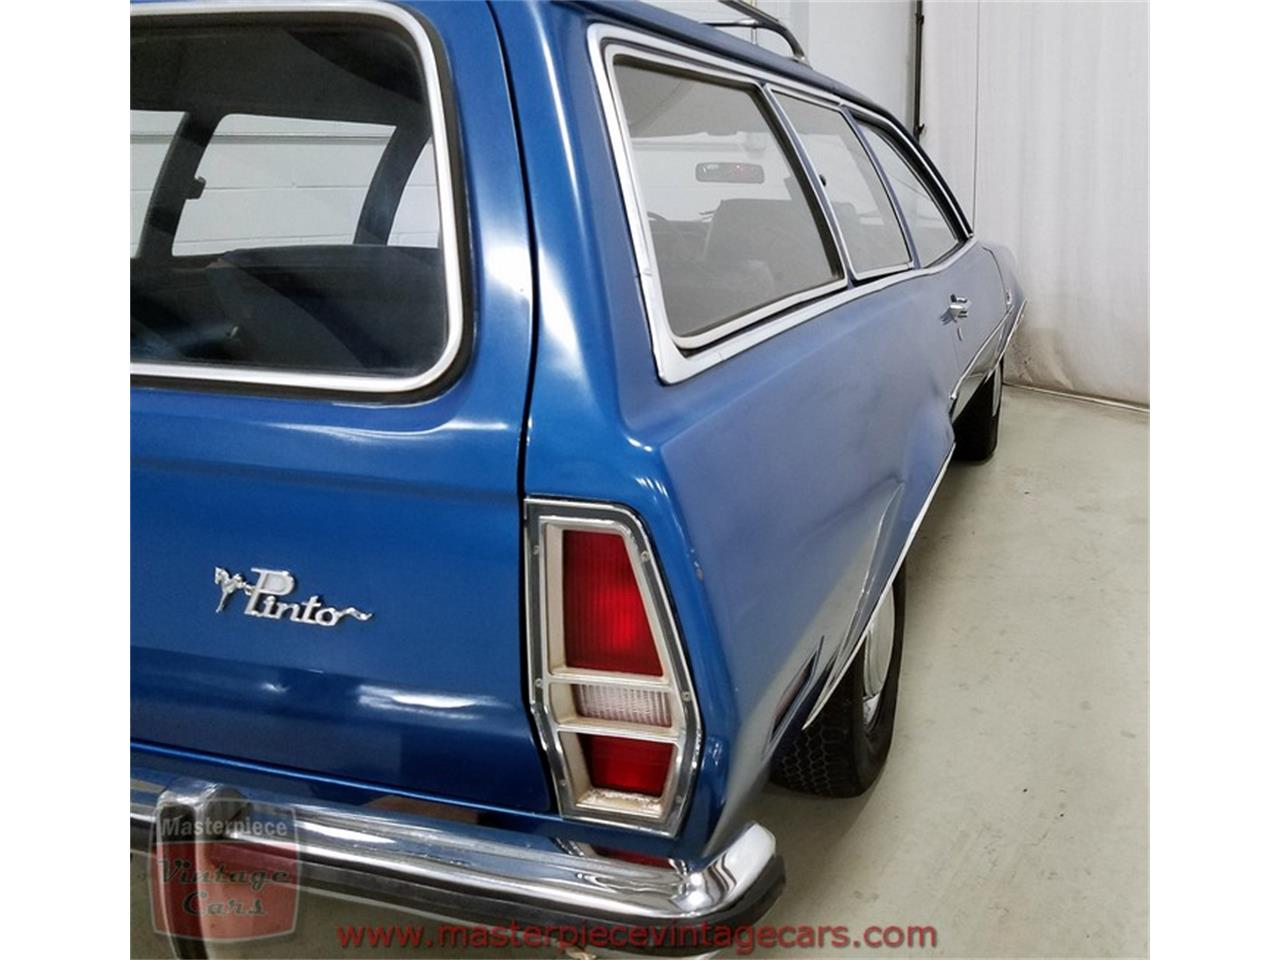 1973 Ford Pinto for sale in Whiteland, IN – photo 9